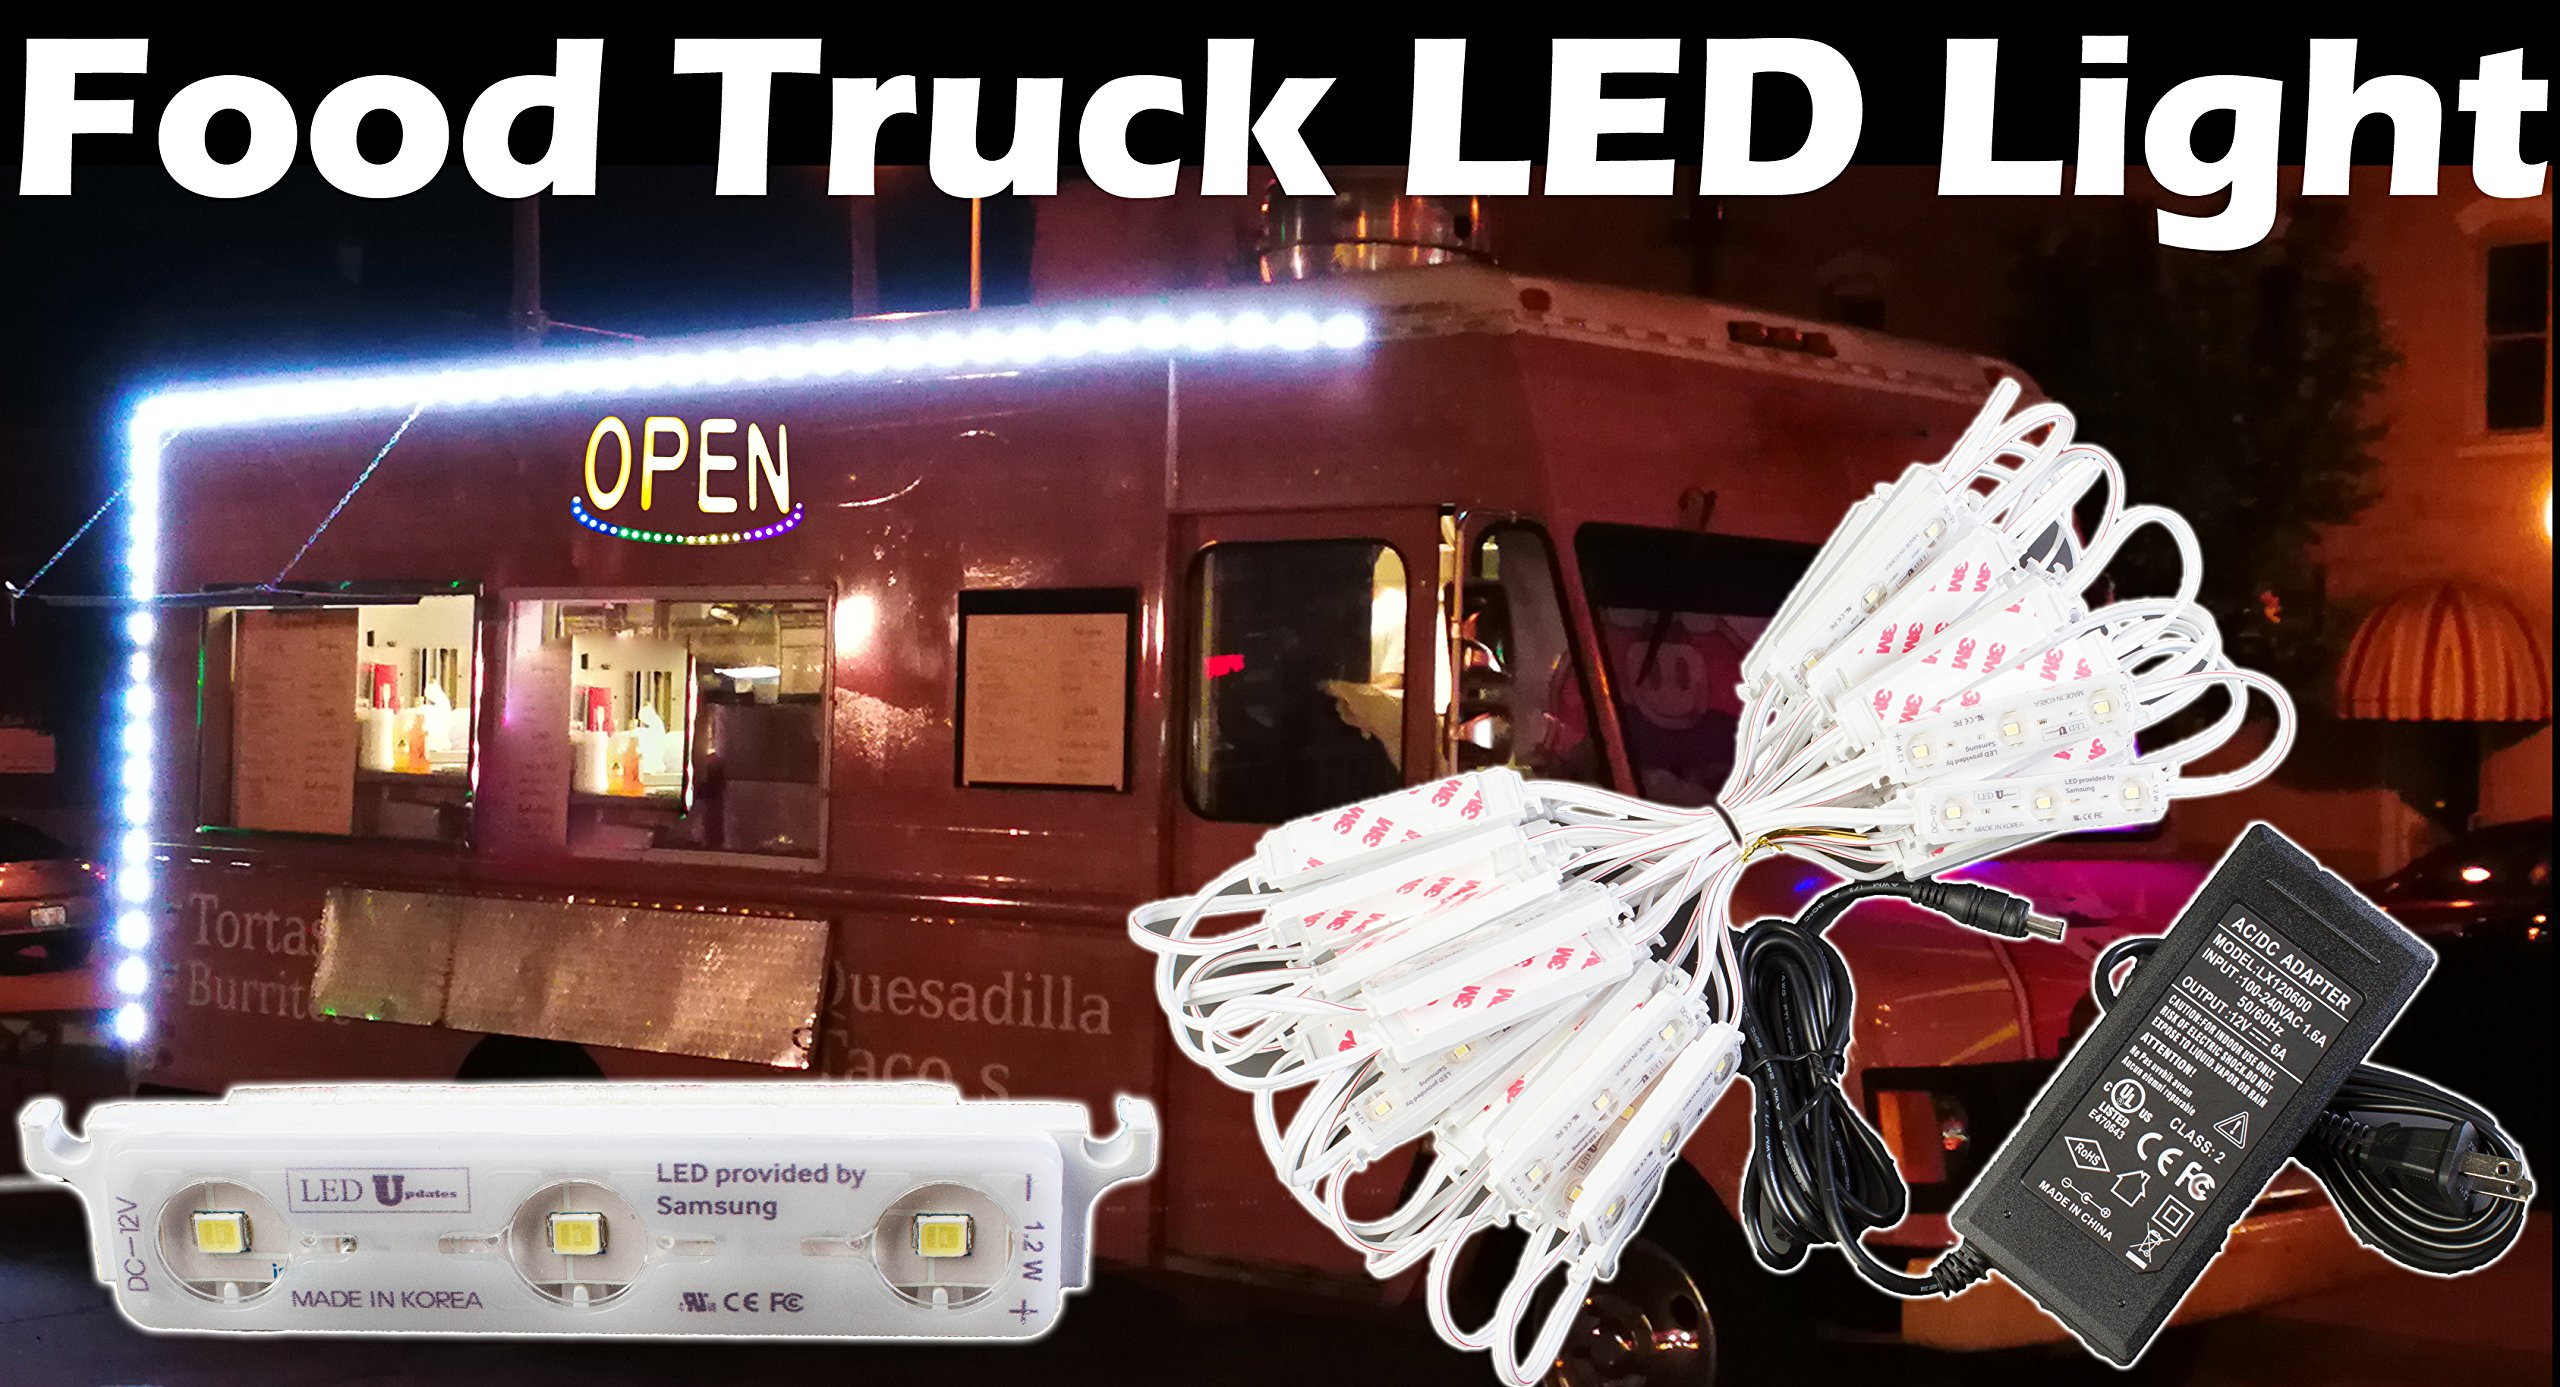 LEDUPDATES PREMIUM FOOD TRUCK LED LIGHT 25ft with UL Listed Power Supply for Trailer, Food Carts, Contractor Van, Bike or any 12v Utility vehicle